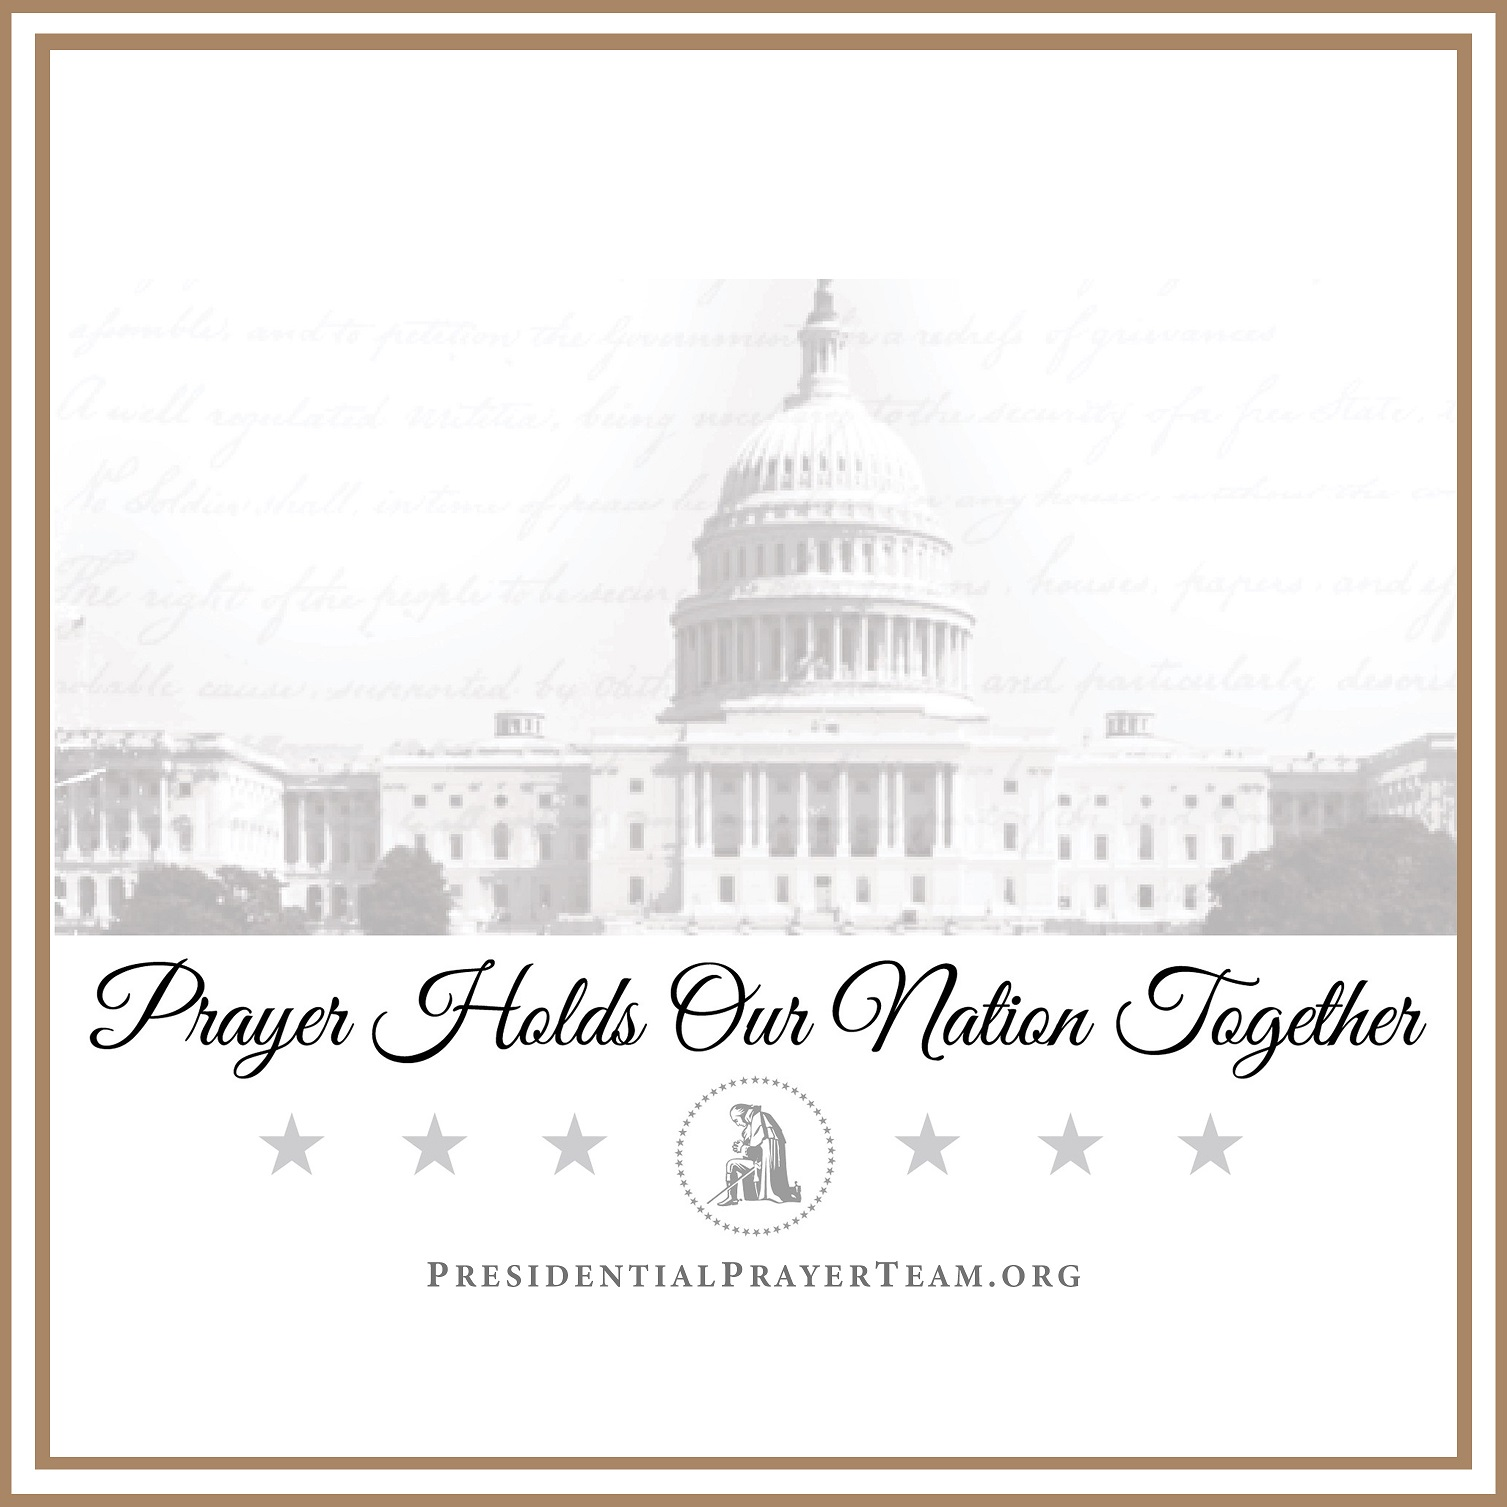 Prayer Holds Our Nation Together